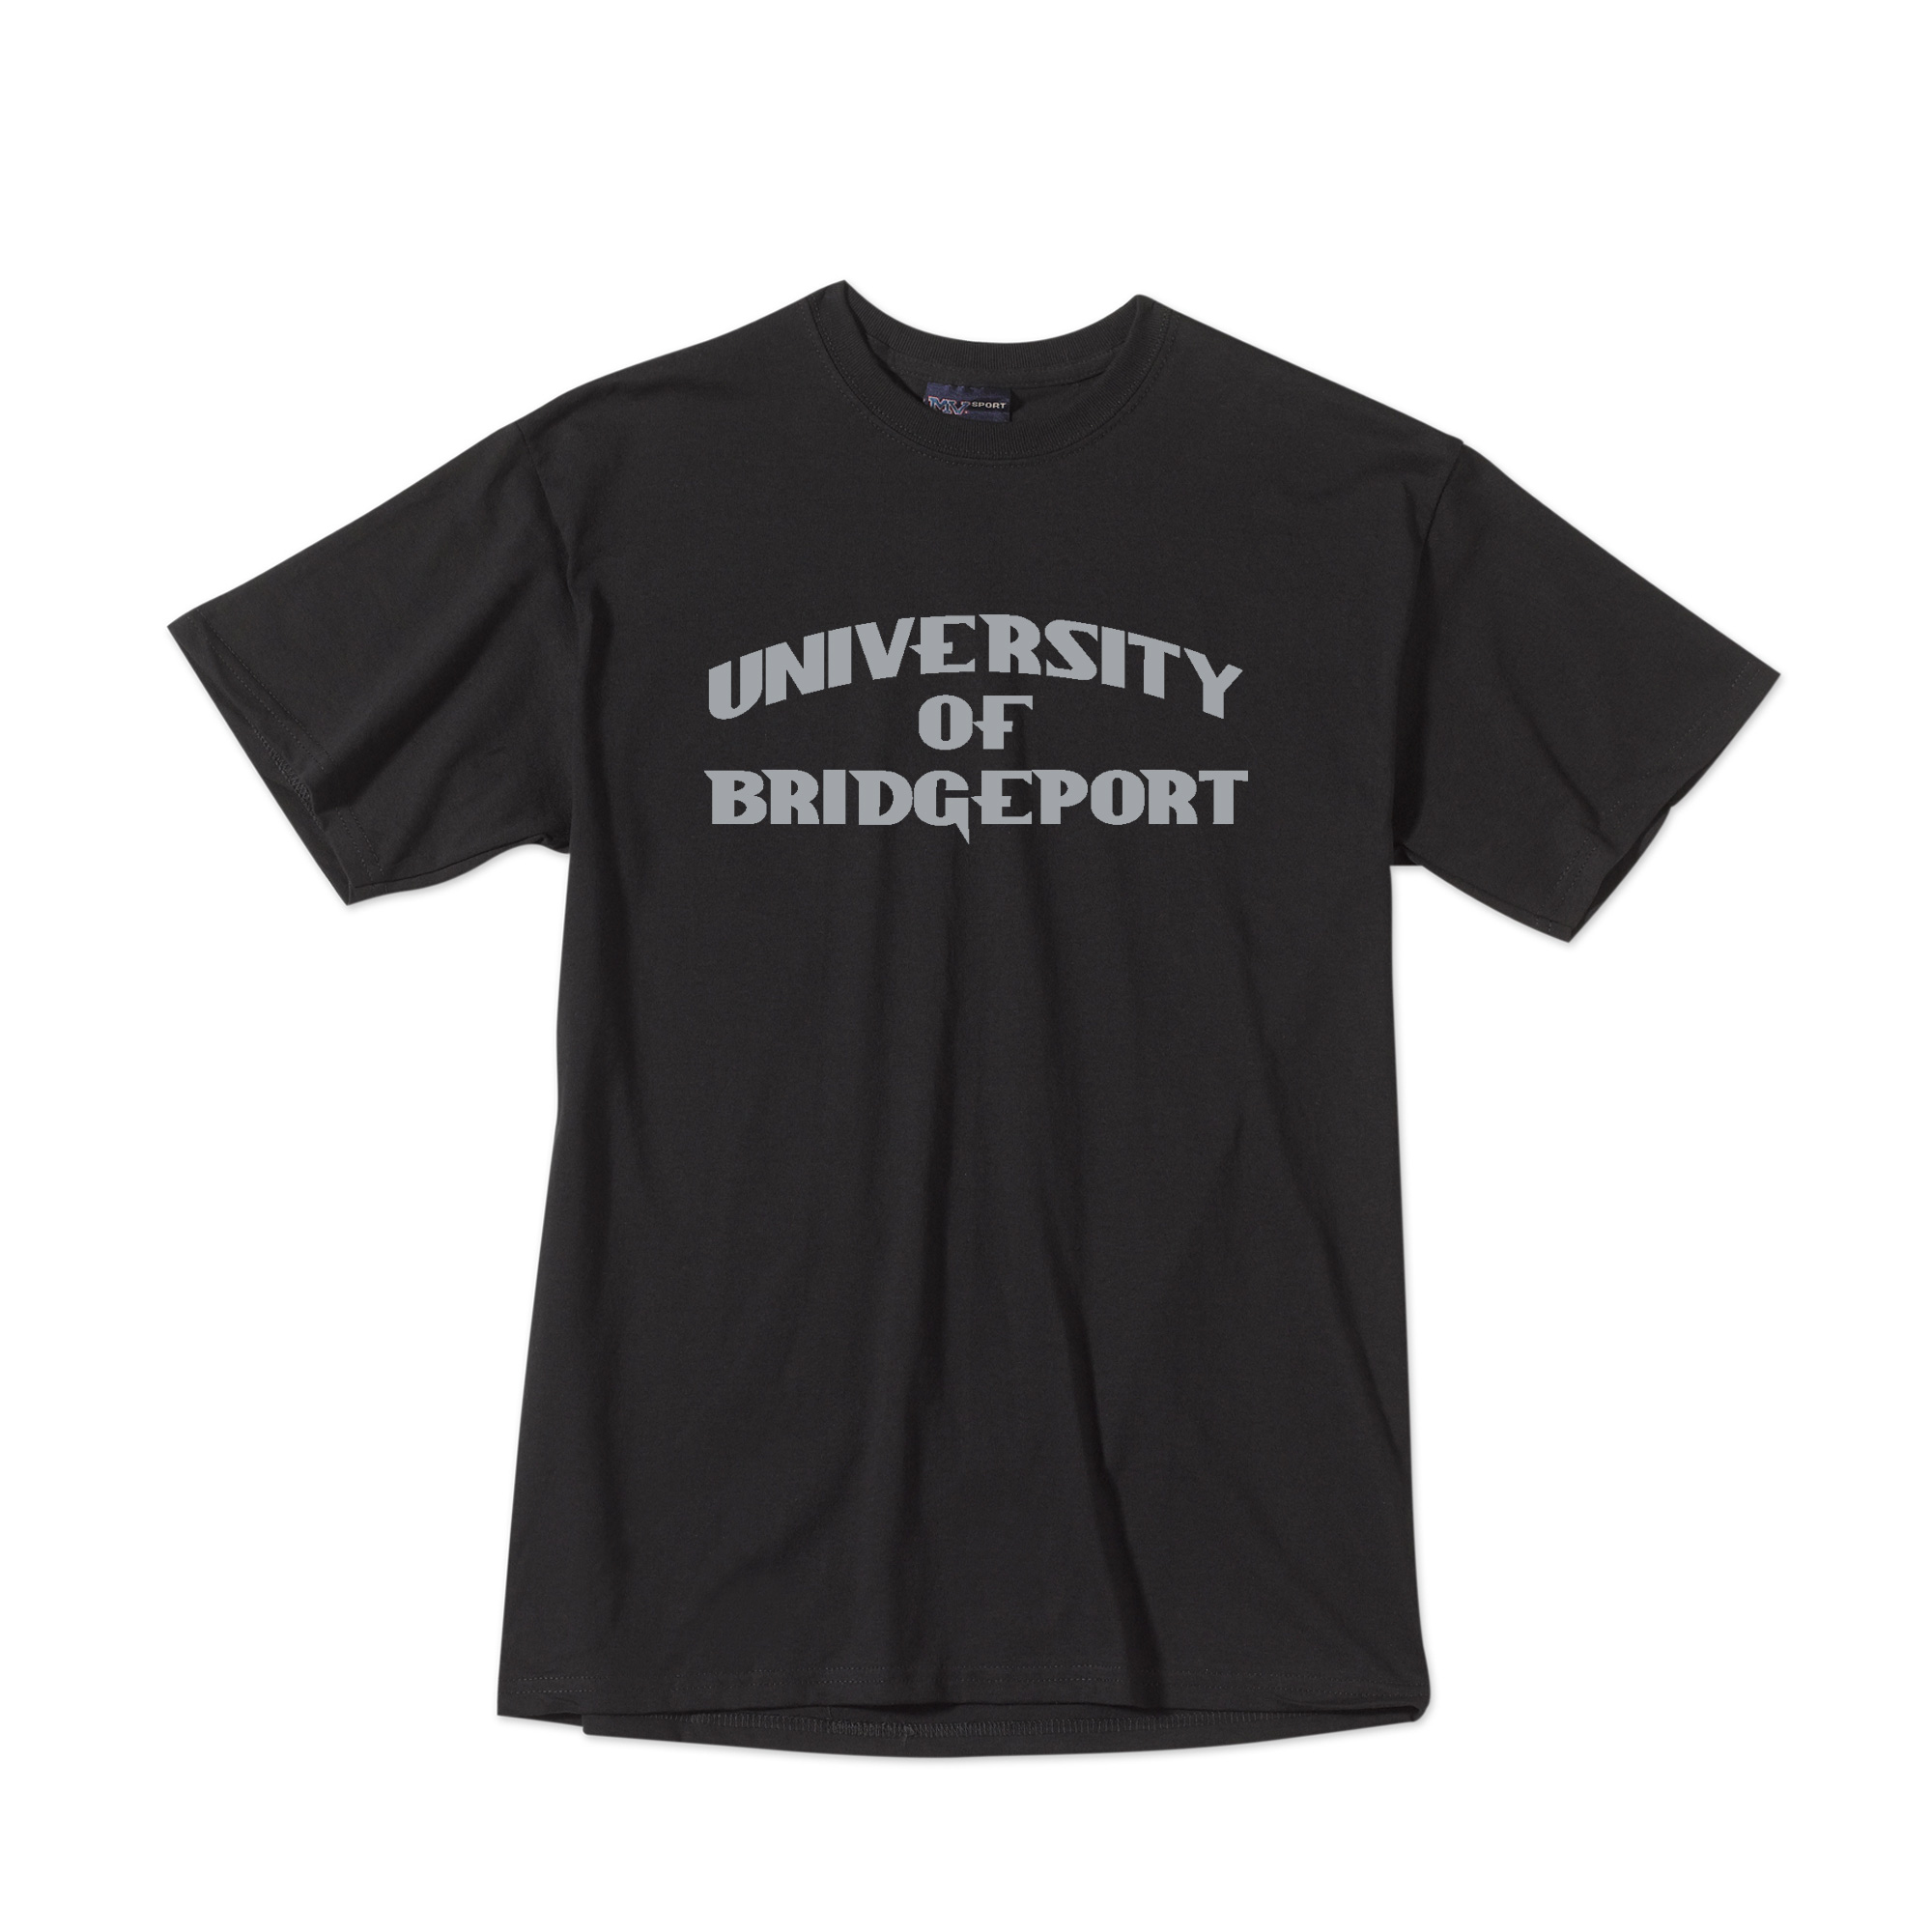 University of Bridgeport Tee - Black